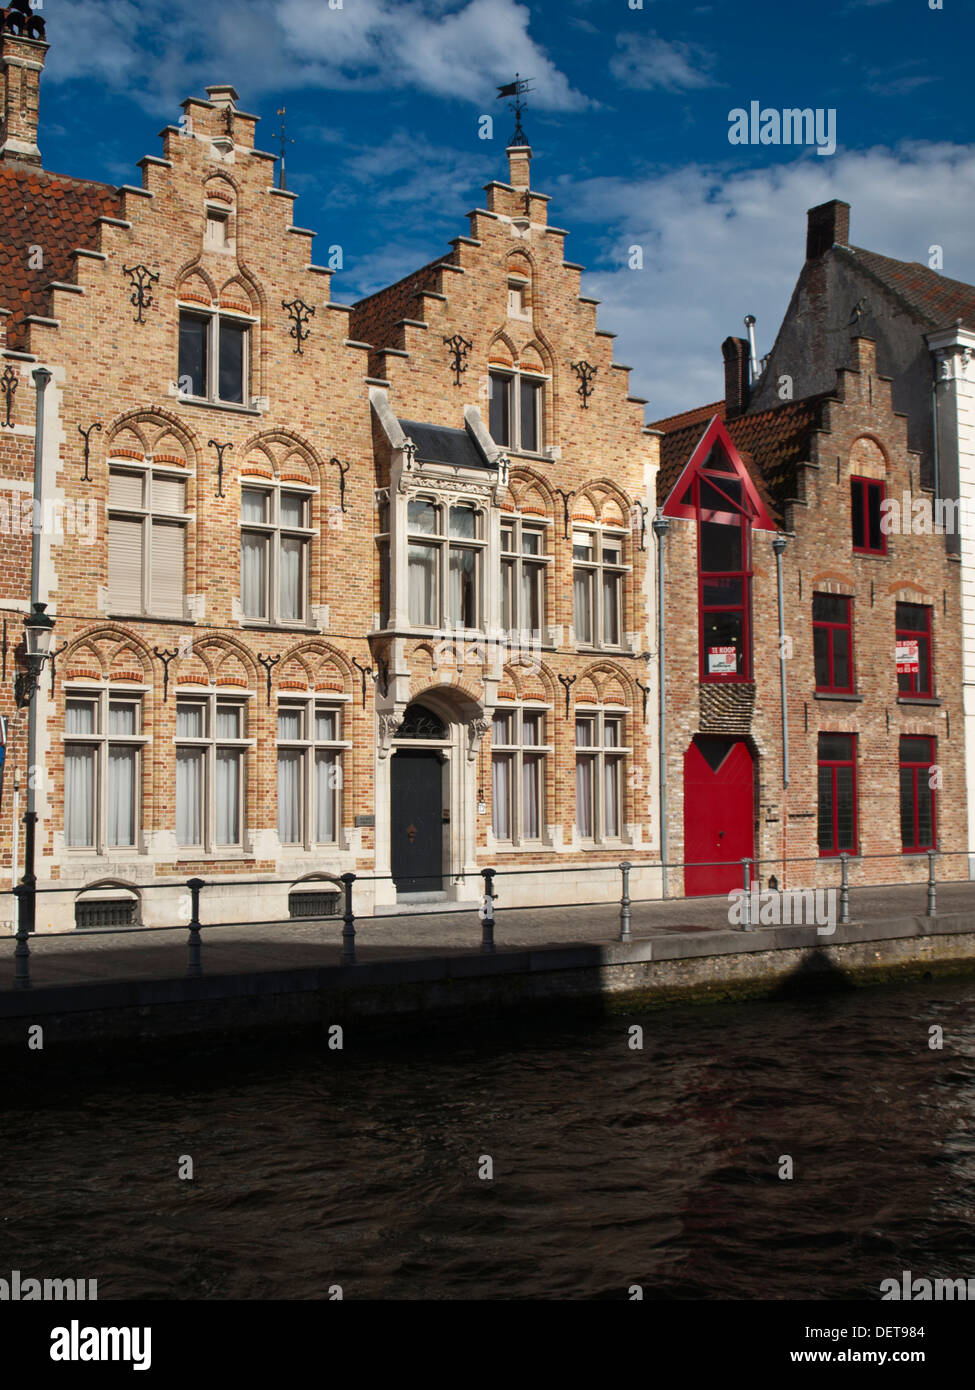 Bruges guilded canal houses - Stock Image